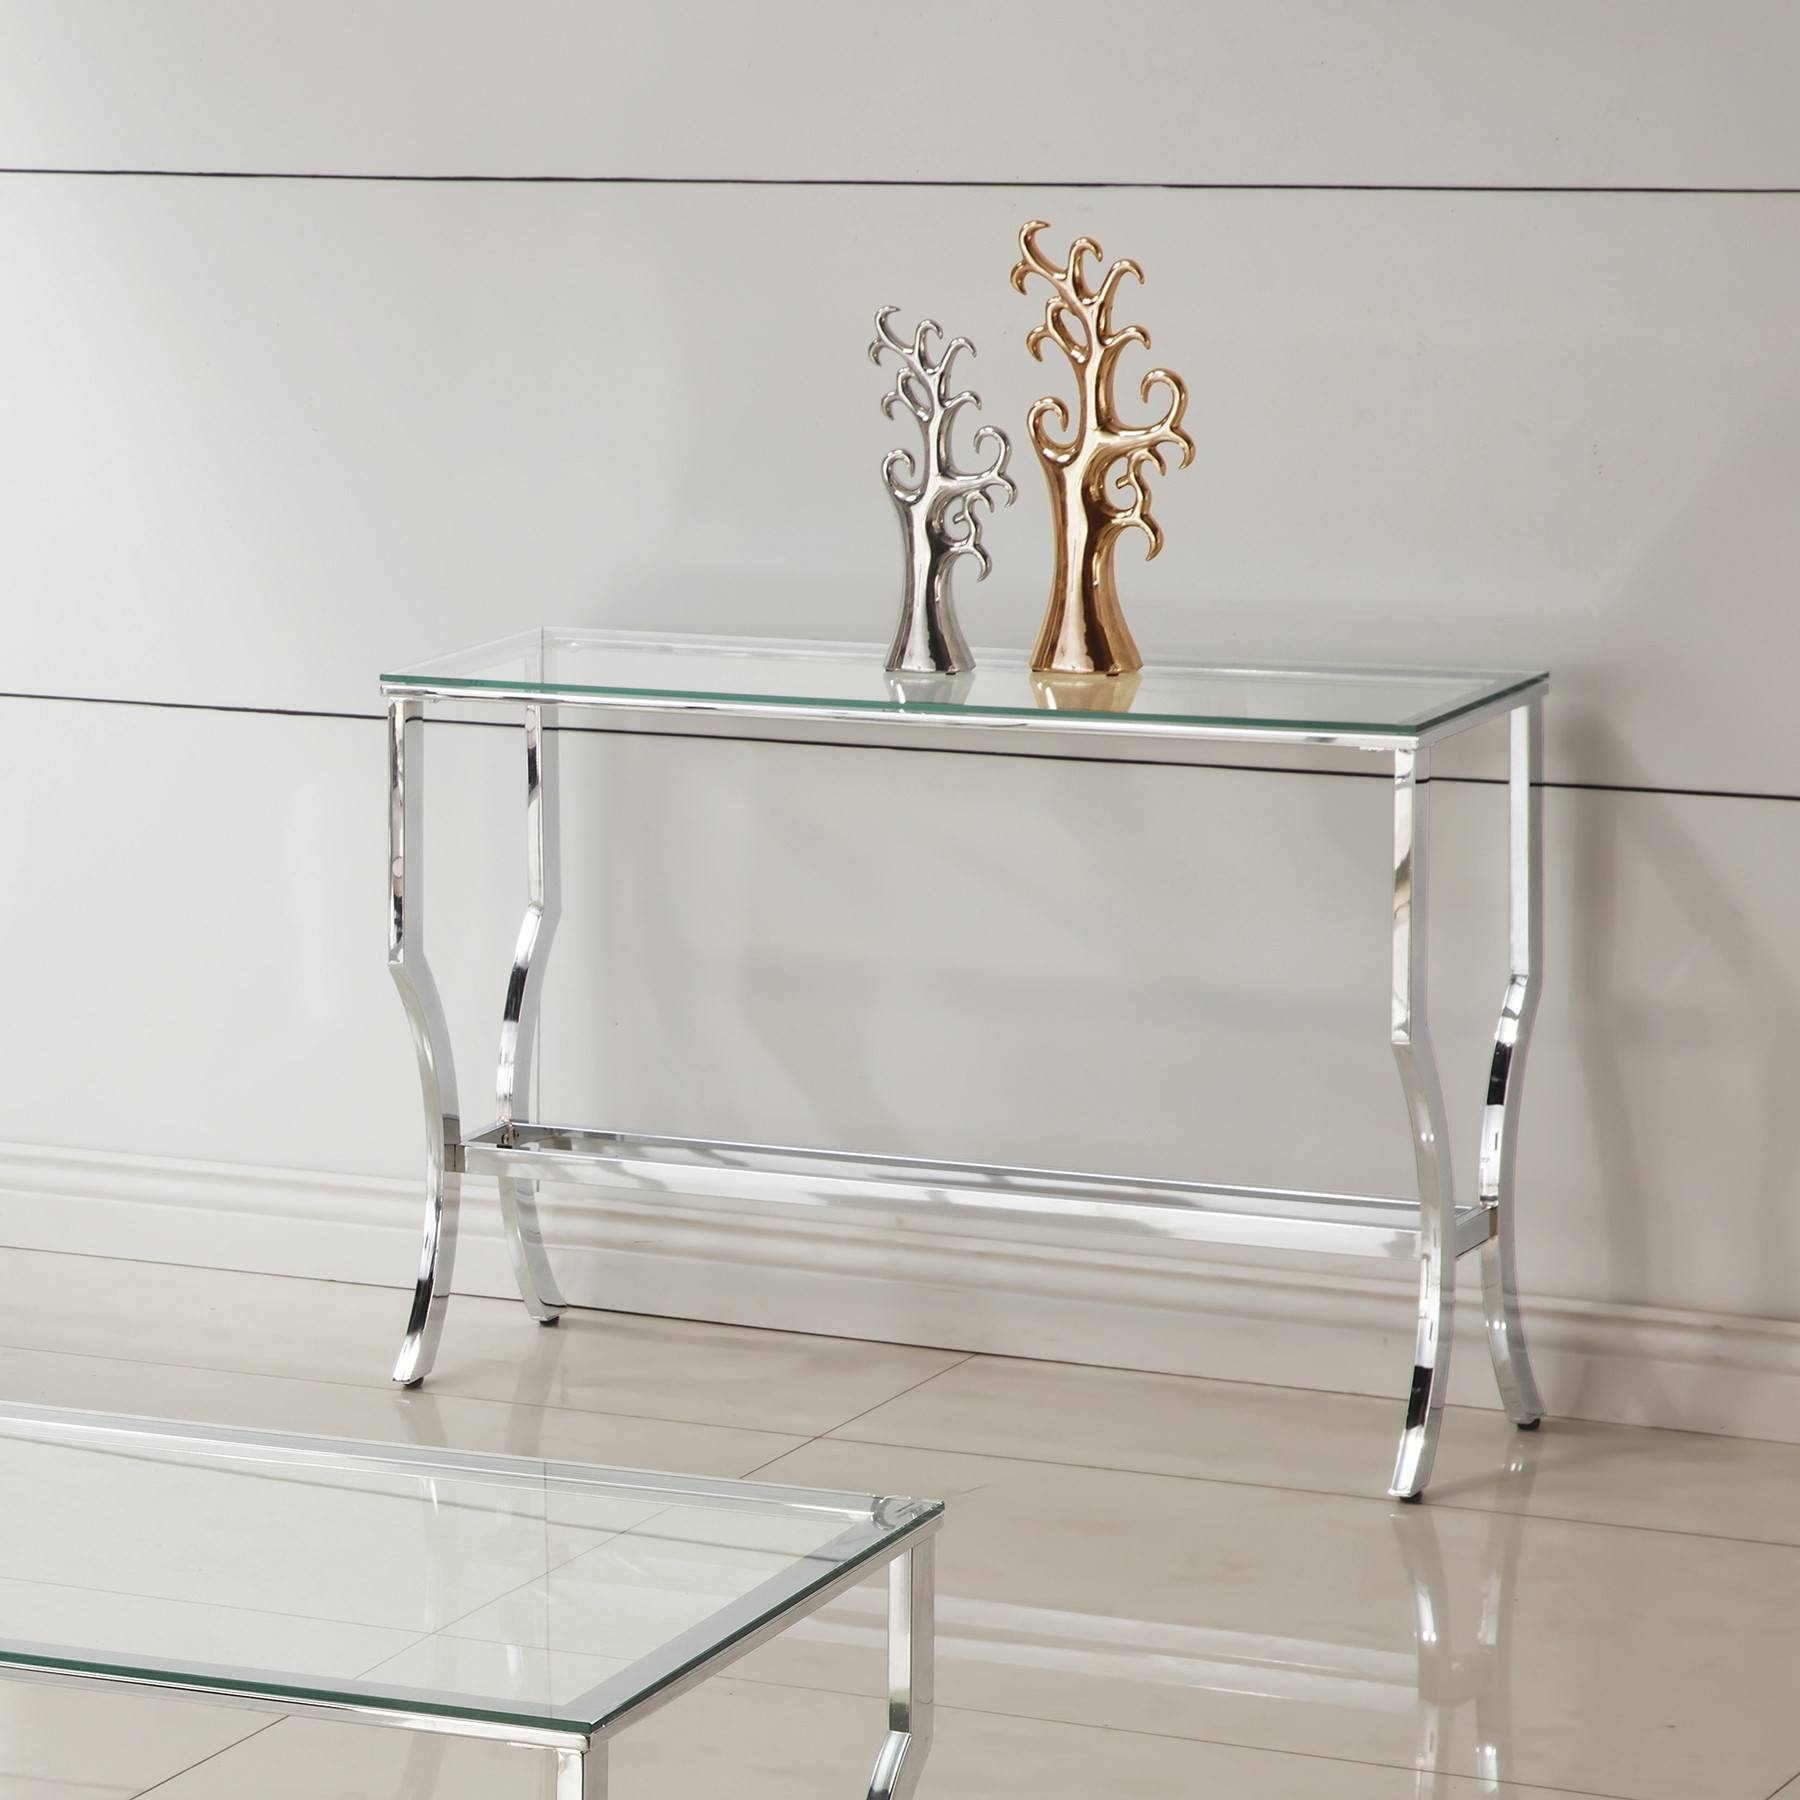 Best Glass Sofa Table 71 On Office Sofa Ideas With Glass Sofa Table Regarding Chrome Sofa Tables (View 1 of 15)